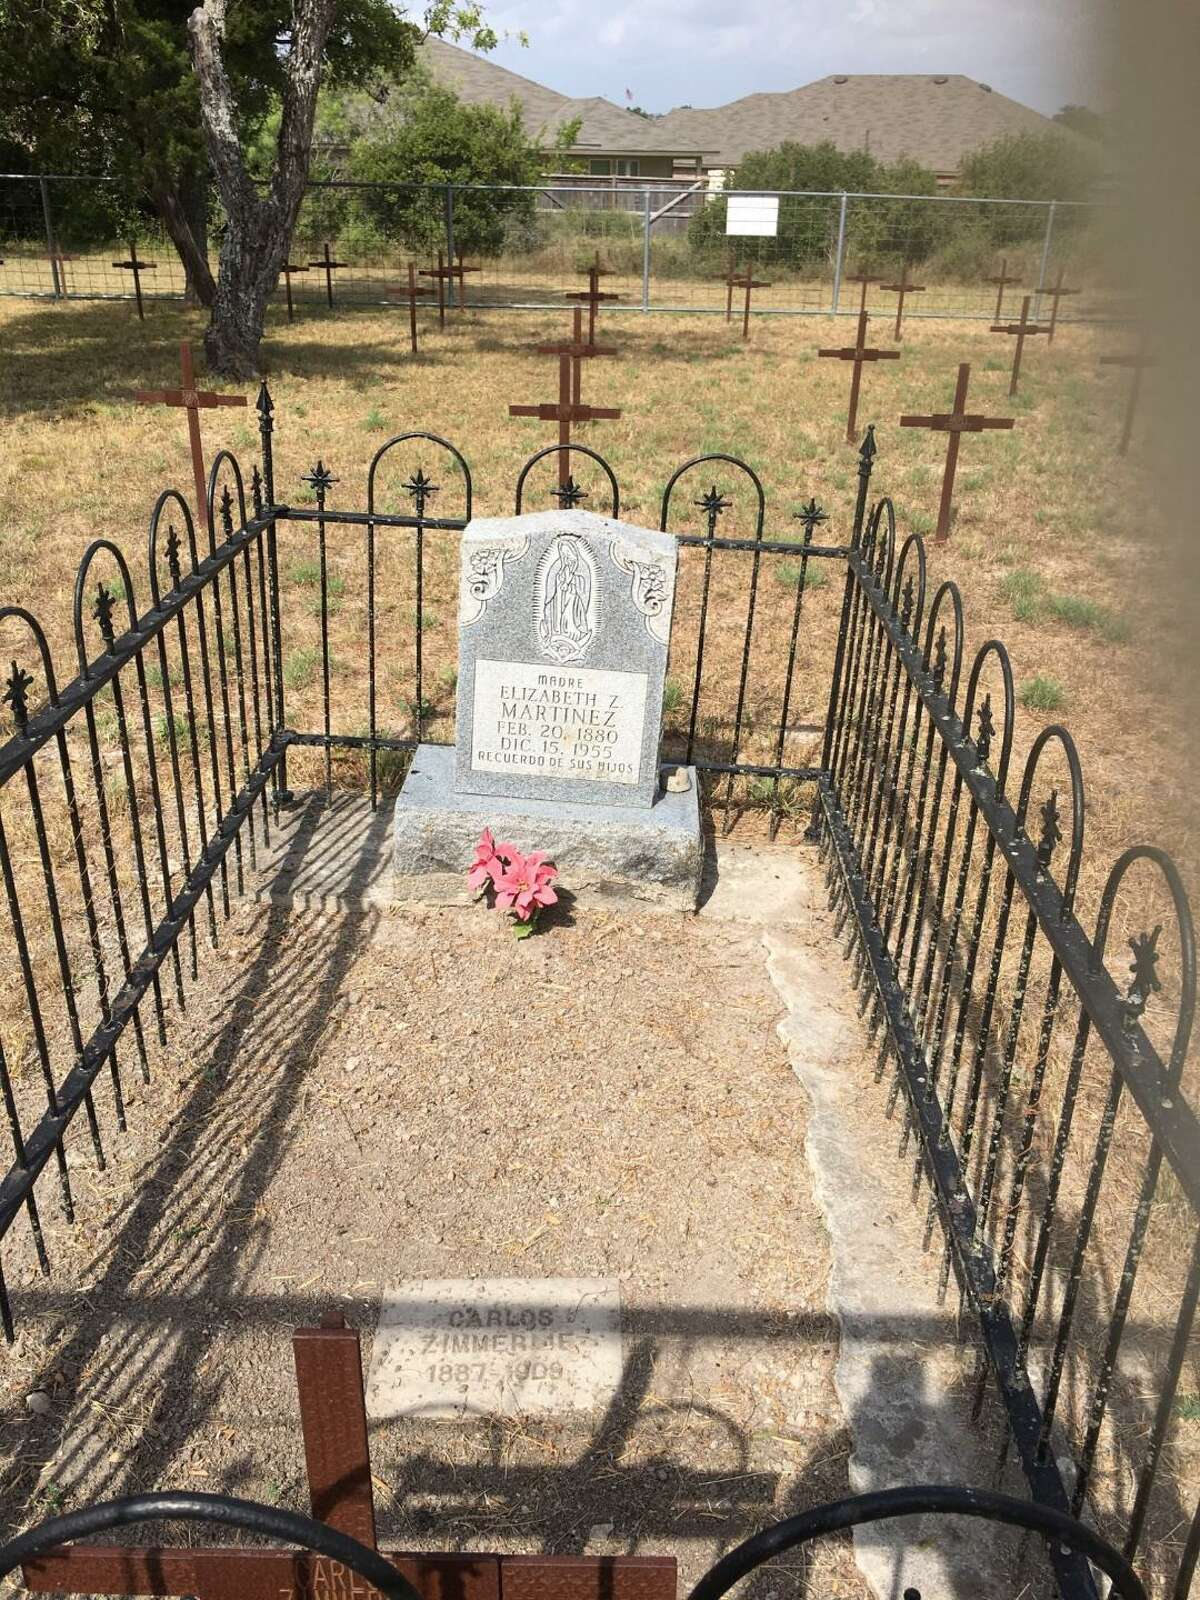 This marker shows the grave of Elizabeth Zimmerle Martinez (1880-1955), one of more than 60 known individuals buried in the Padilla-Zimmerle family cemetery preserved at the Redbird Ranch Subdivision.